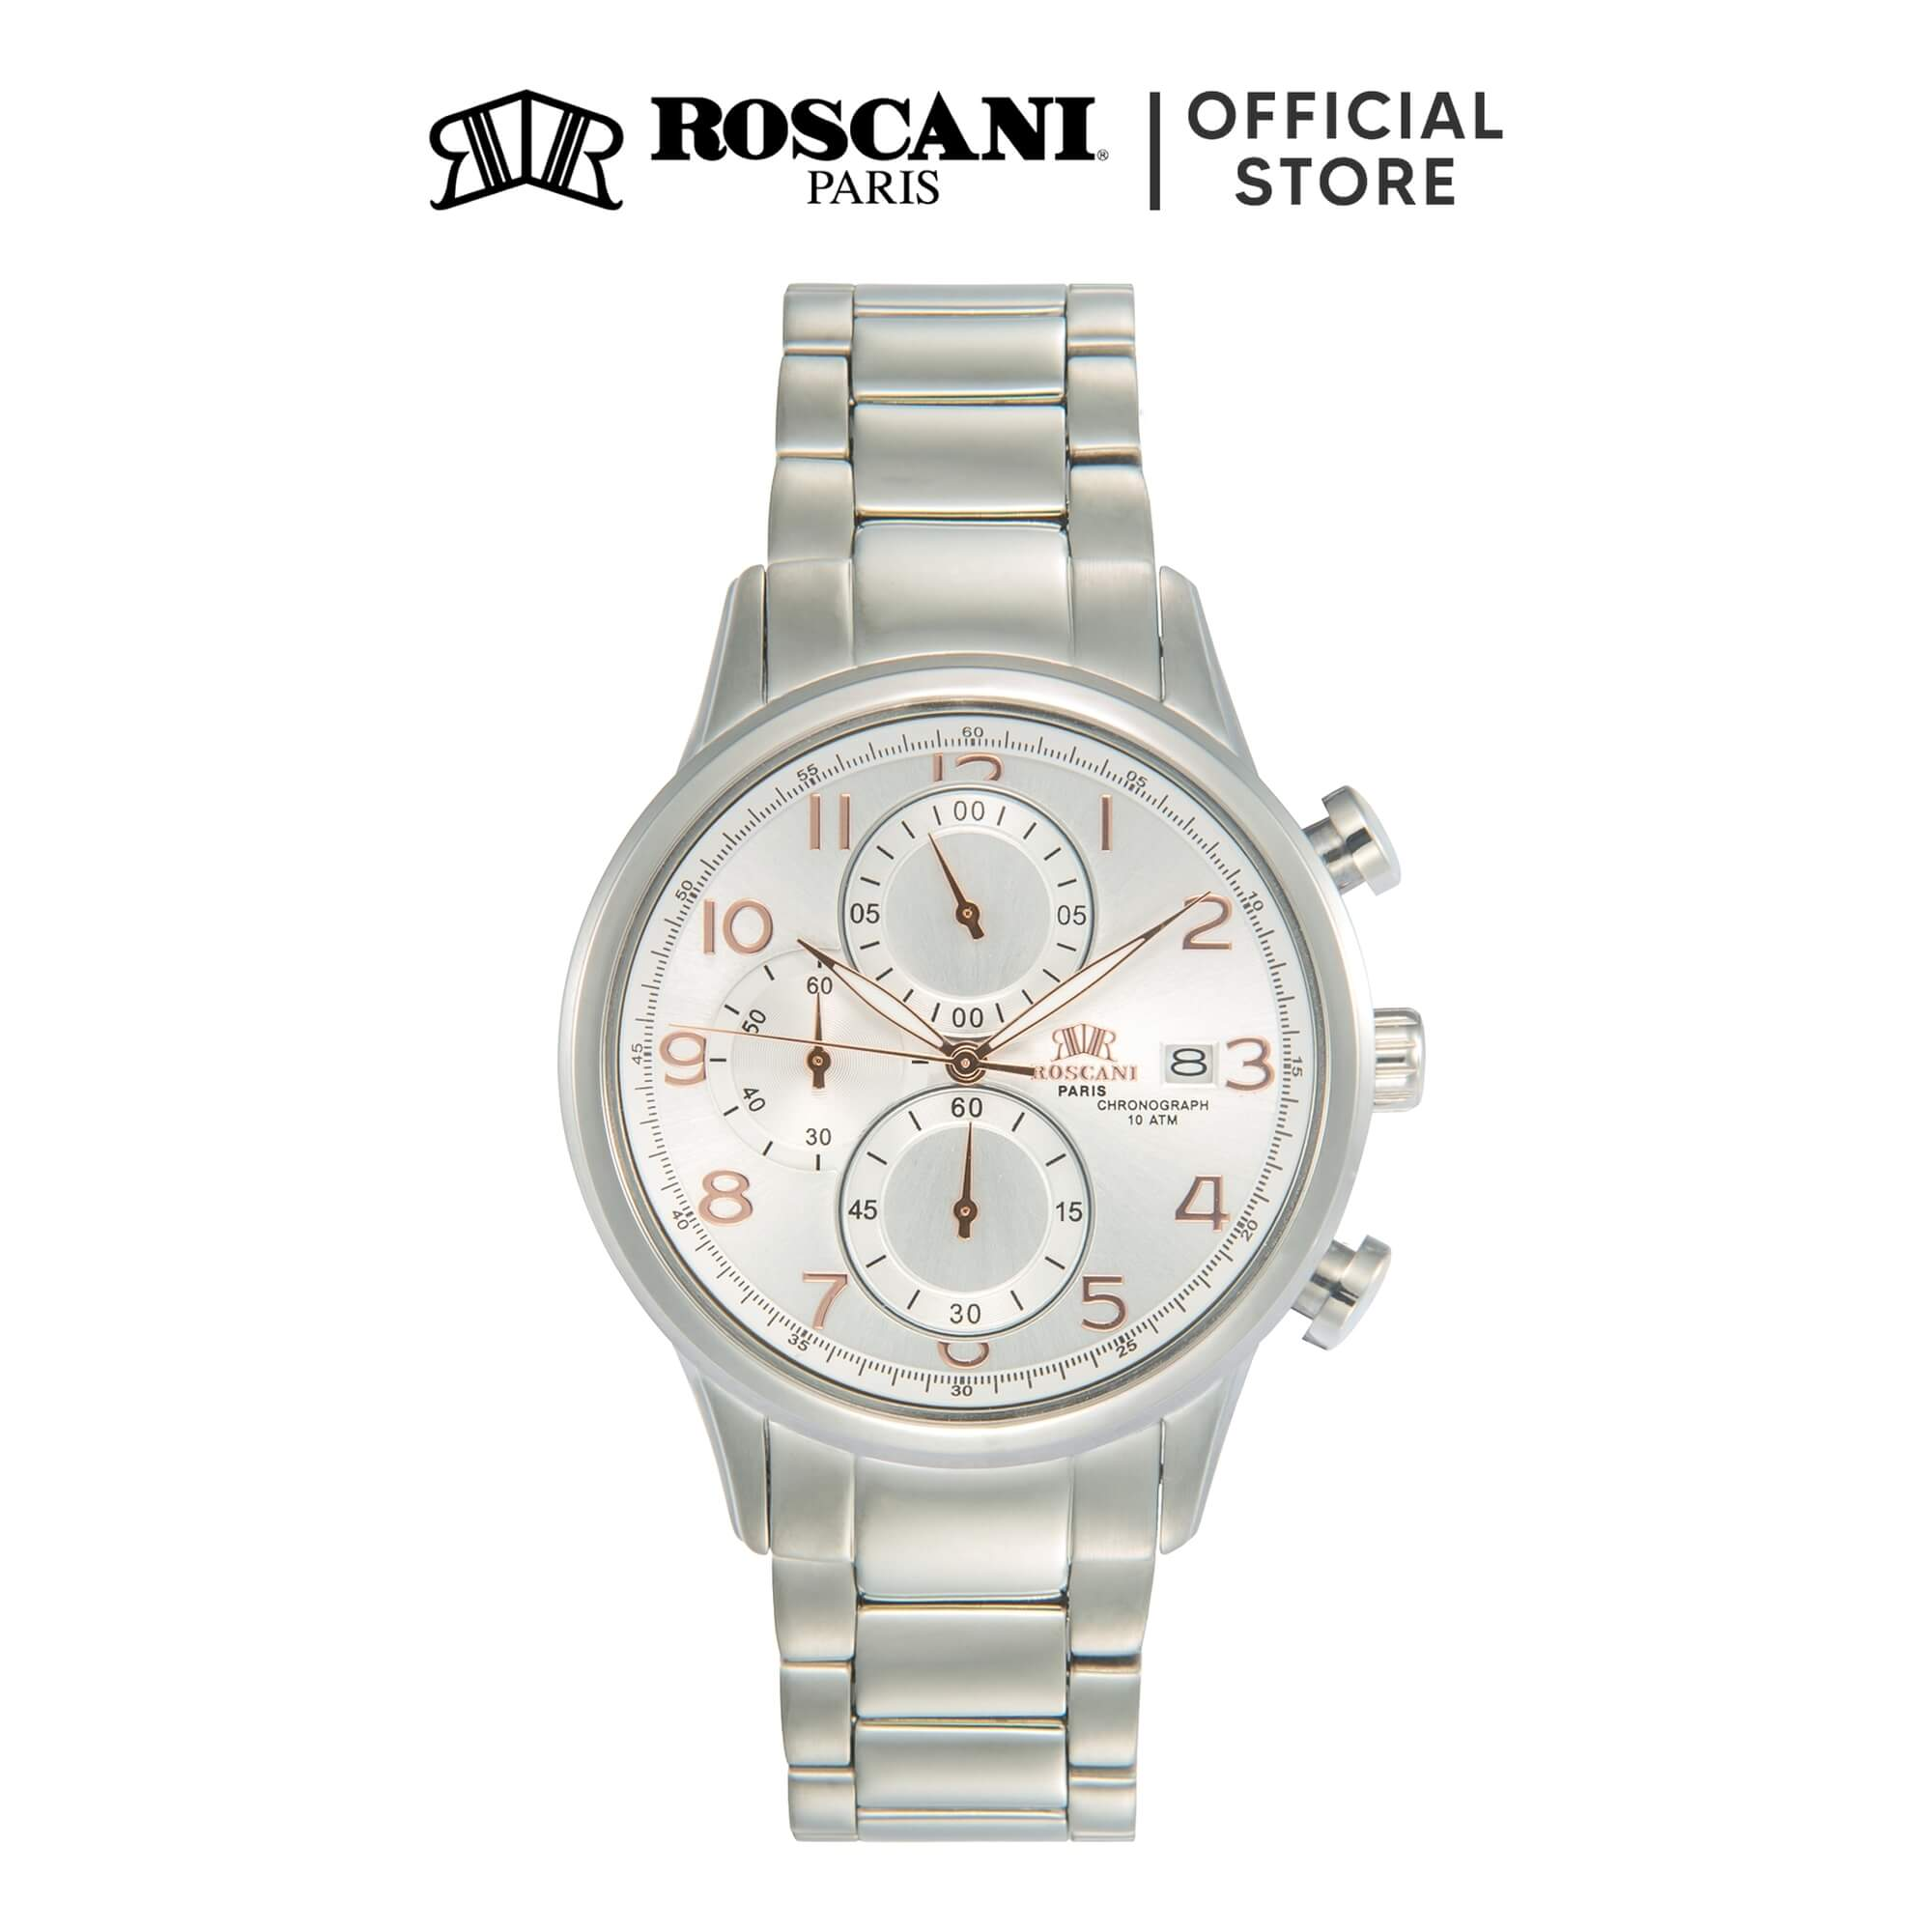 Roscani Katherine 963 (Chronograph + WR 10ATM) Bracelet Men Watch